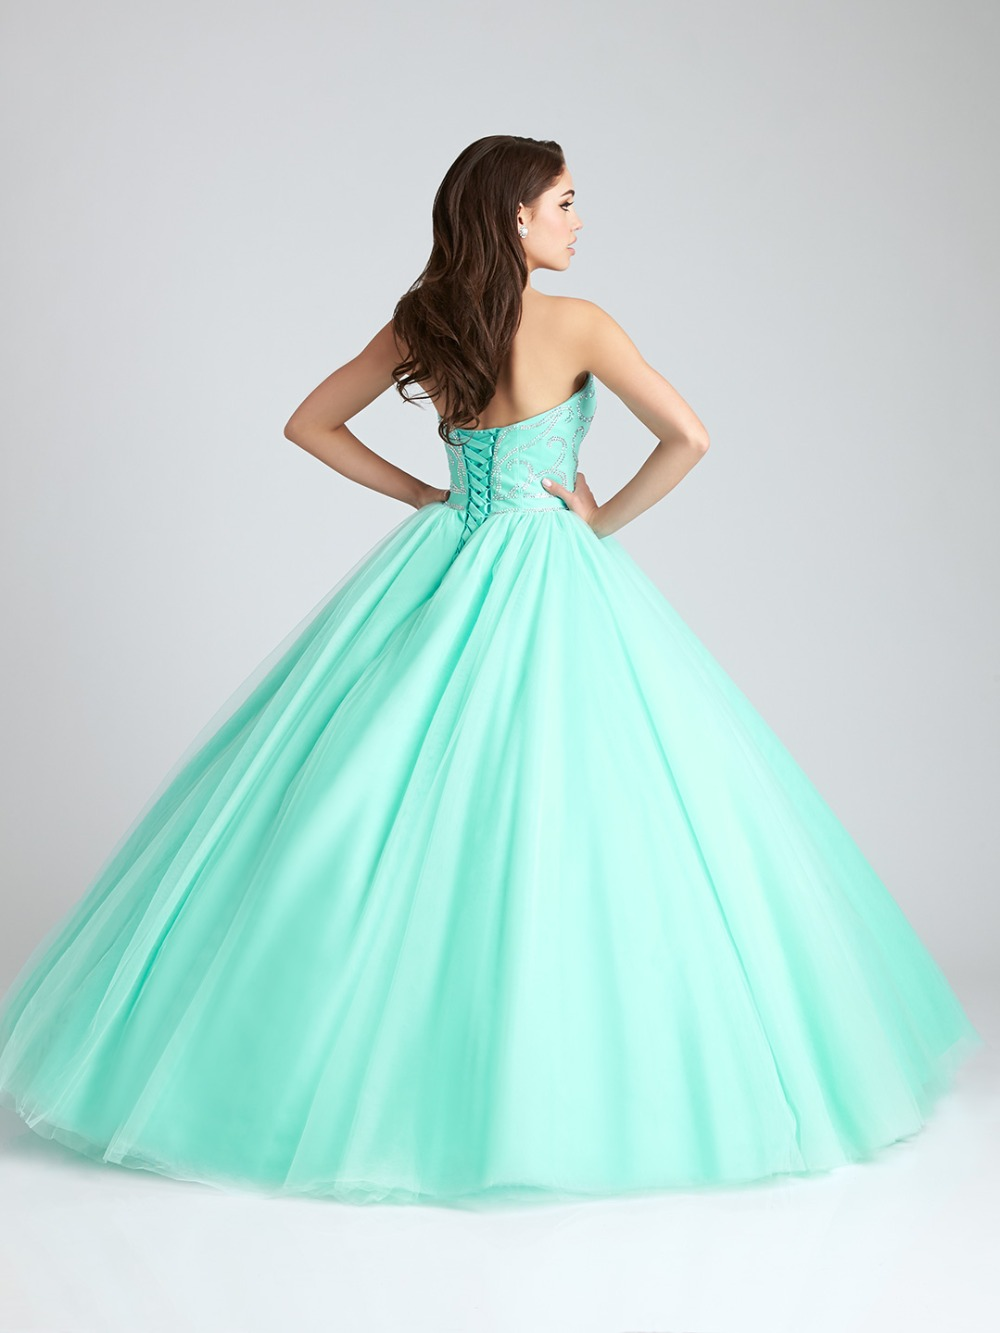 8fae328d2 Trajes De Quinceaneras 2017 Strapless Beaded Tulle Vestidos De 15 Anos  Longo Ball Gown Puffy Mint Green Quinceanera Dresses-in Quinceanera Dresses  from ...